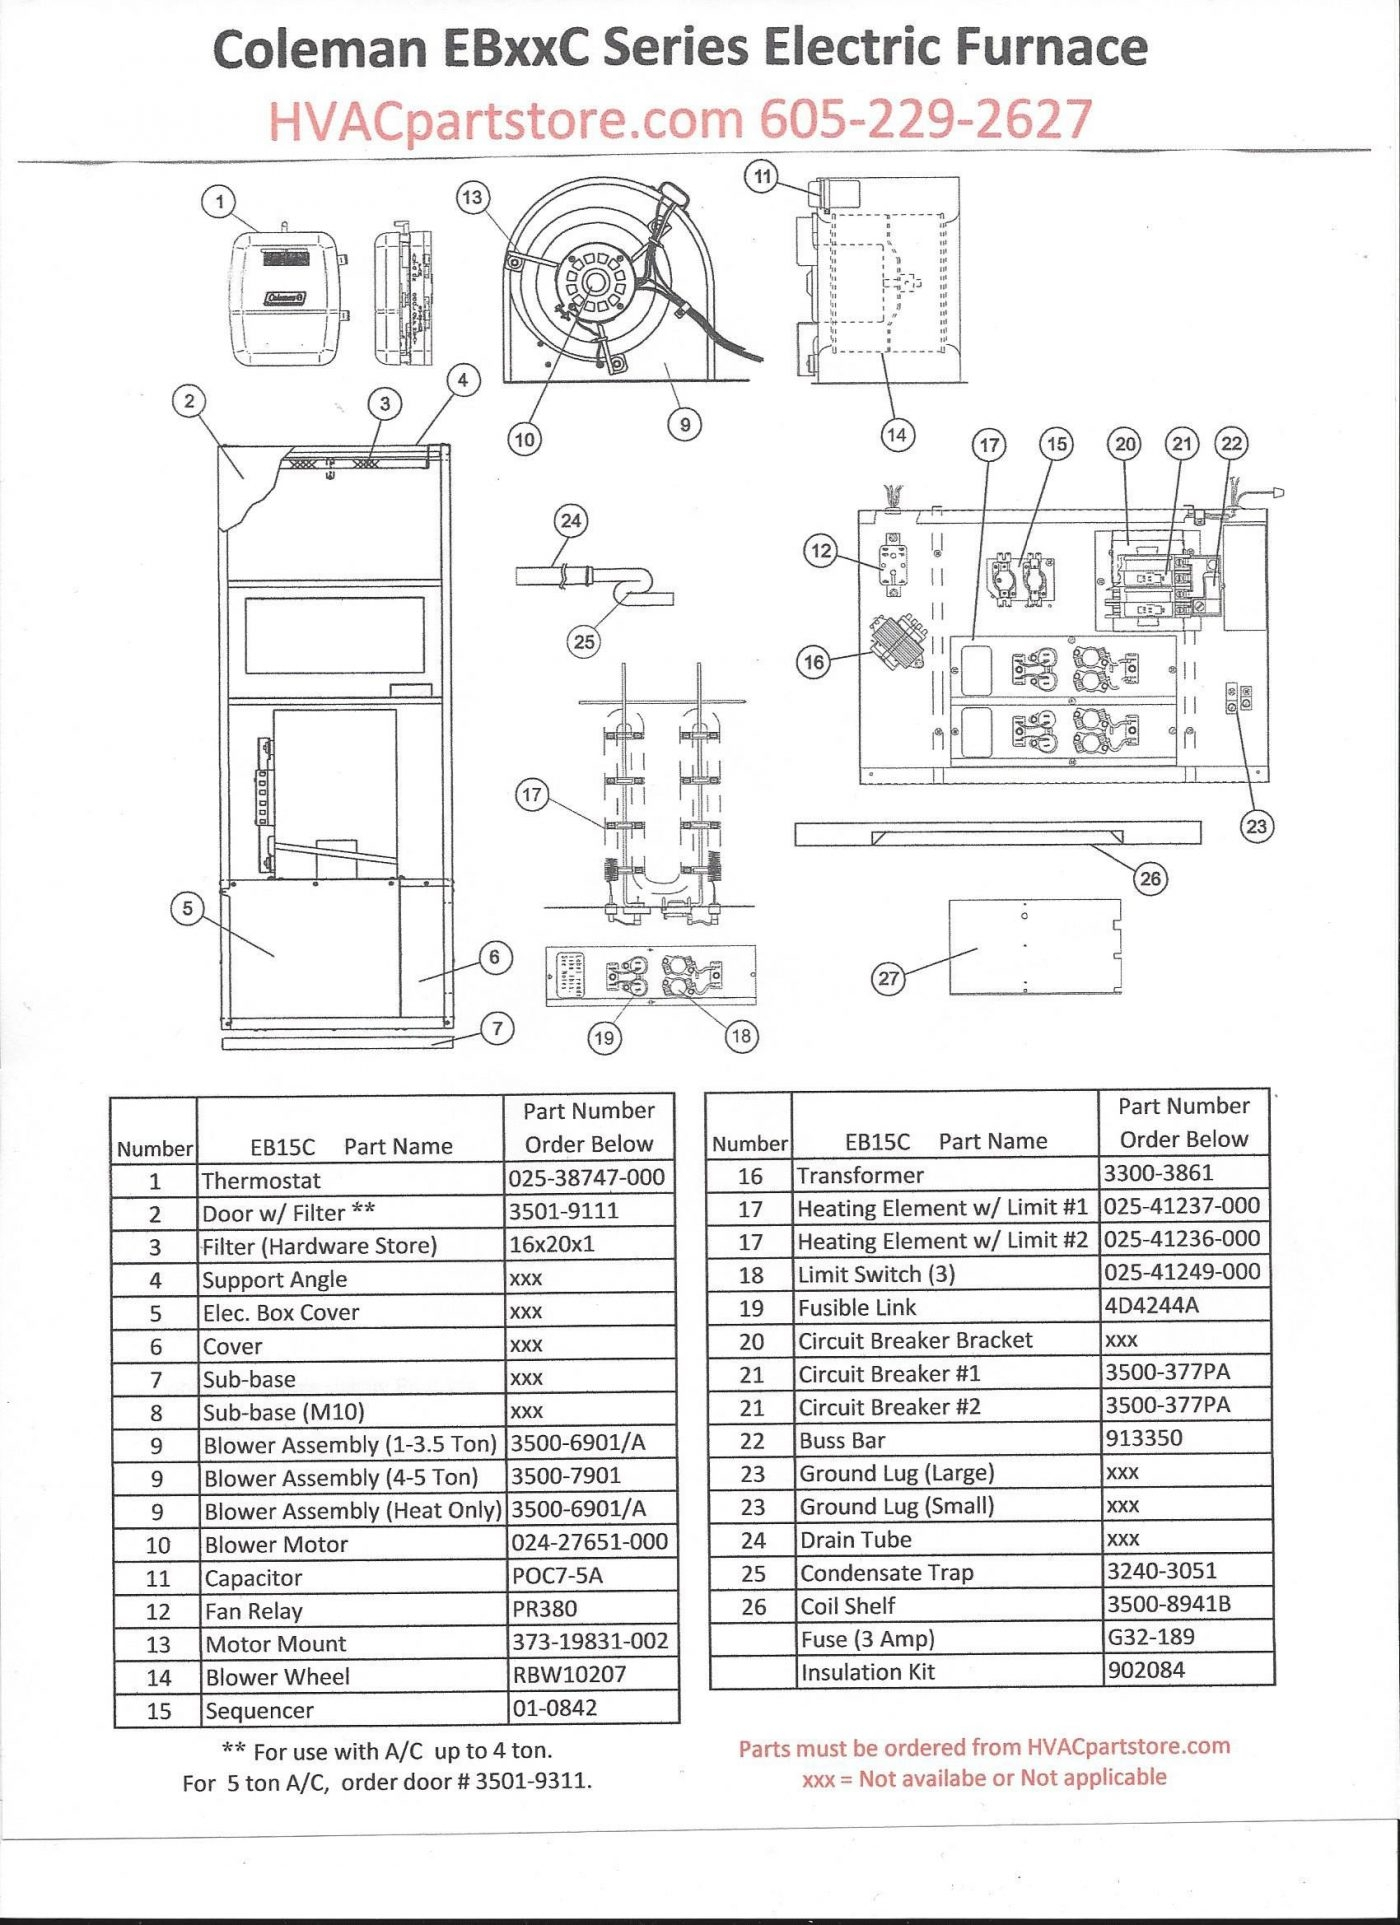 Tempstar Heat Pump Wiring Diagram | Free Wiring Diagram on electric fire pump diagram, heat pump installation diagram, electric heat pump system, electric heat thermostat wires, electric heat pump installation, electric heat thermostat wiring, heat pump schematic diagram, electric heat pumps how they work, heat pump system diagram, york heat pump diagram, lennox heat pump diagram, heat pump reversing valve diagram, heat pump electrical diagram, heat pump air flow diagram, heat pump relay diagram, electric heat wiring diagrams 220, carrier heat pump parts diagram, electric heat pump efficiency, electric heat schematic, electric heat pumps for homes,